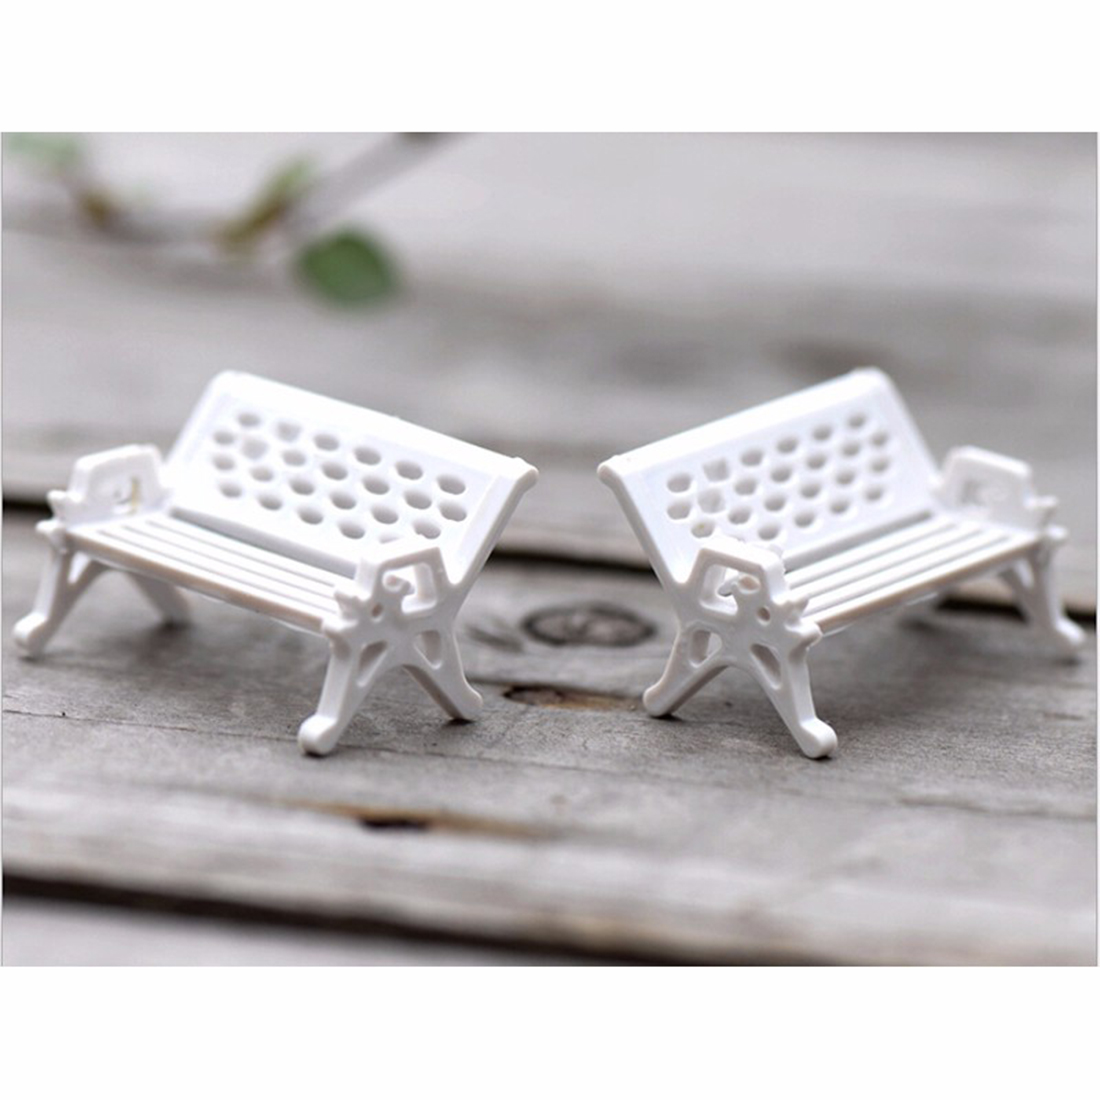 Home decoration accessories Latest 1Pcs Miniature White Chair Christmas Diy Plastics Fairy Garden Craft Decoration